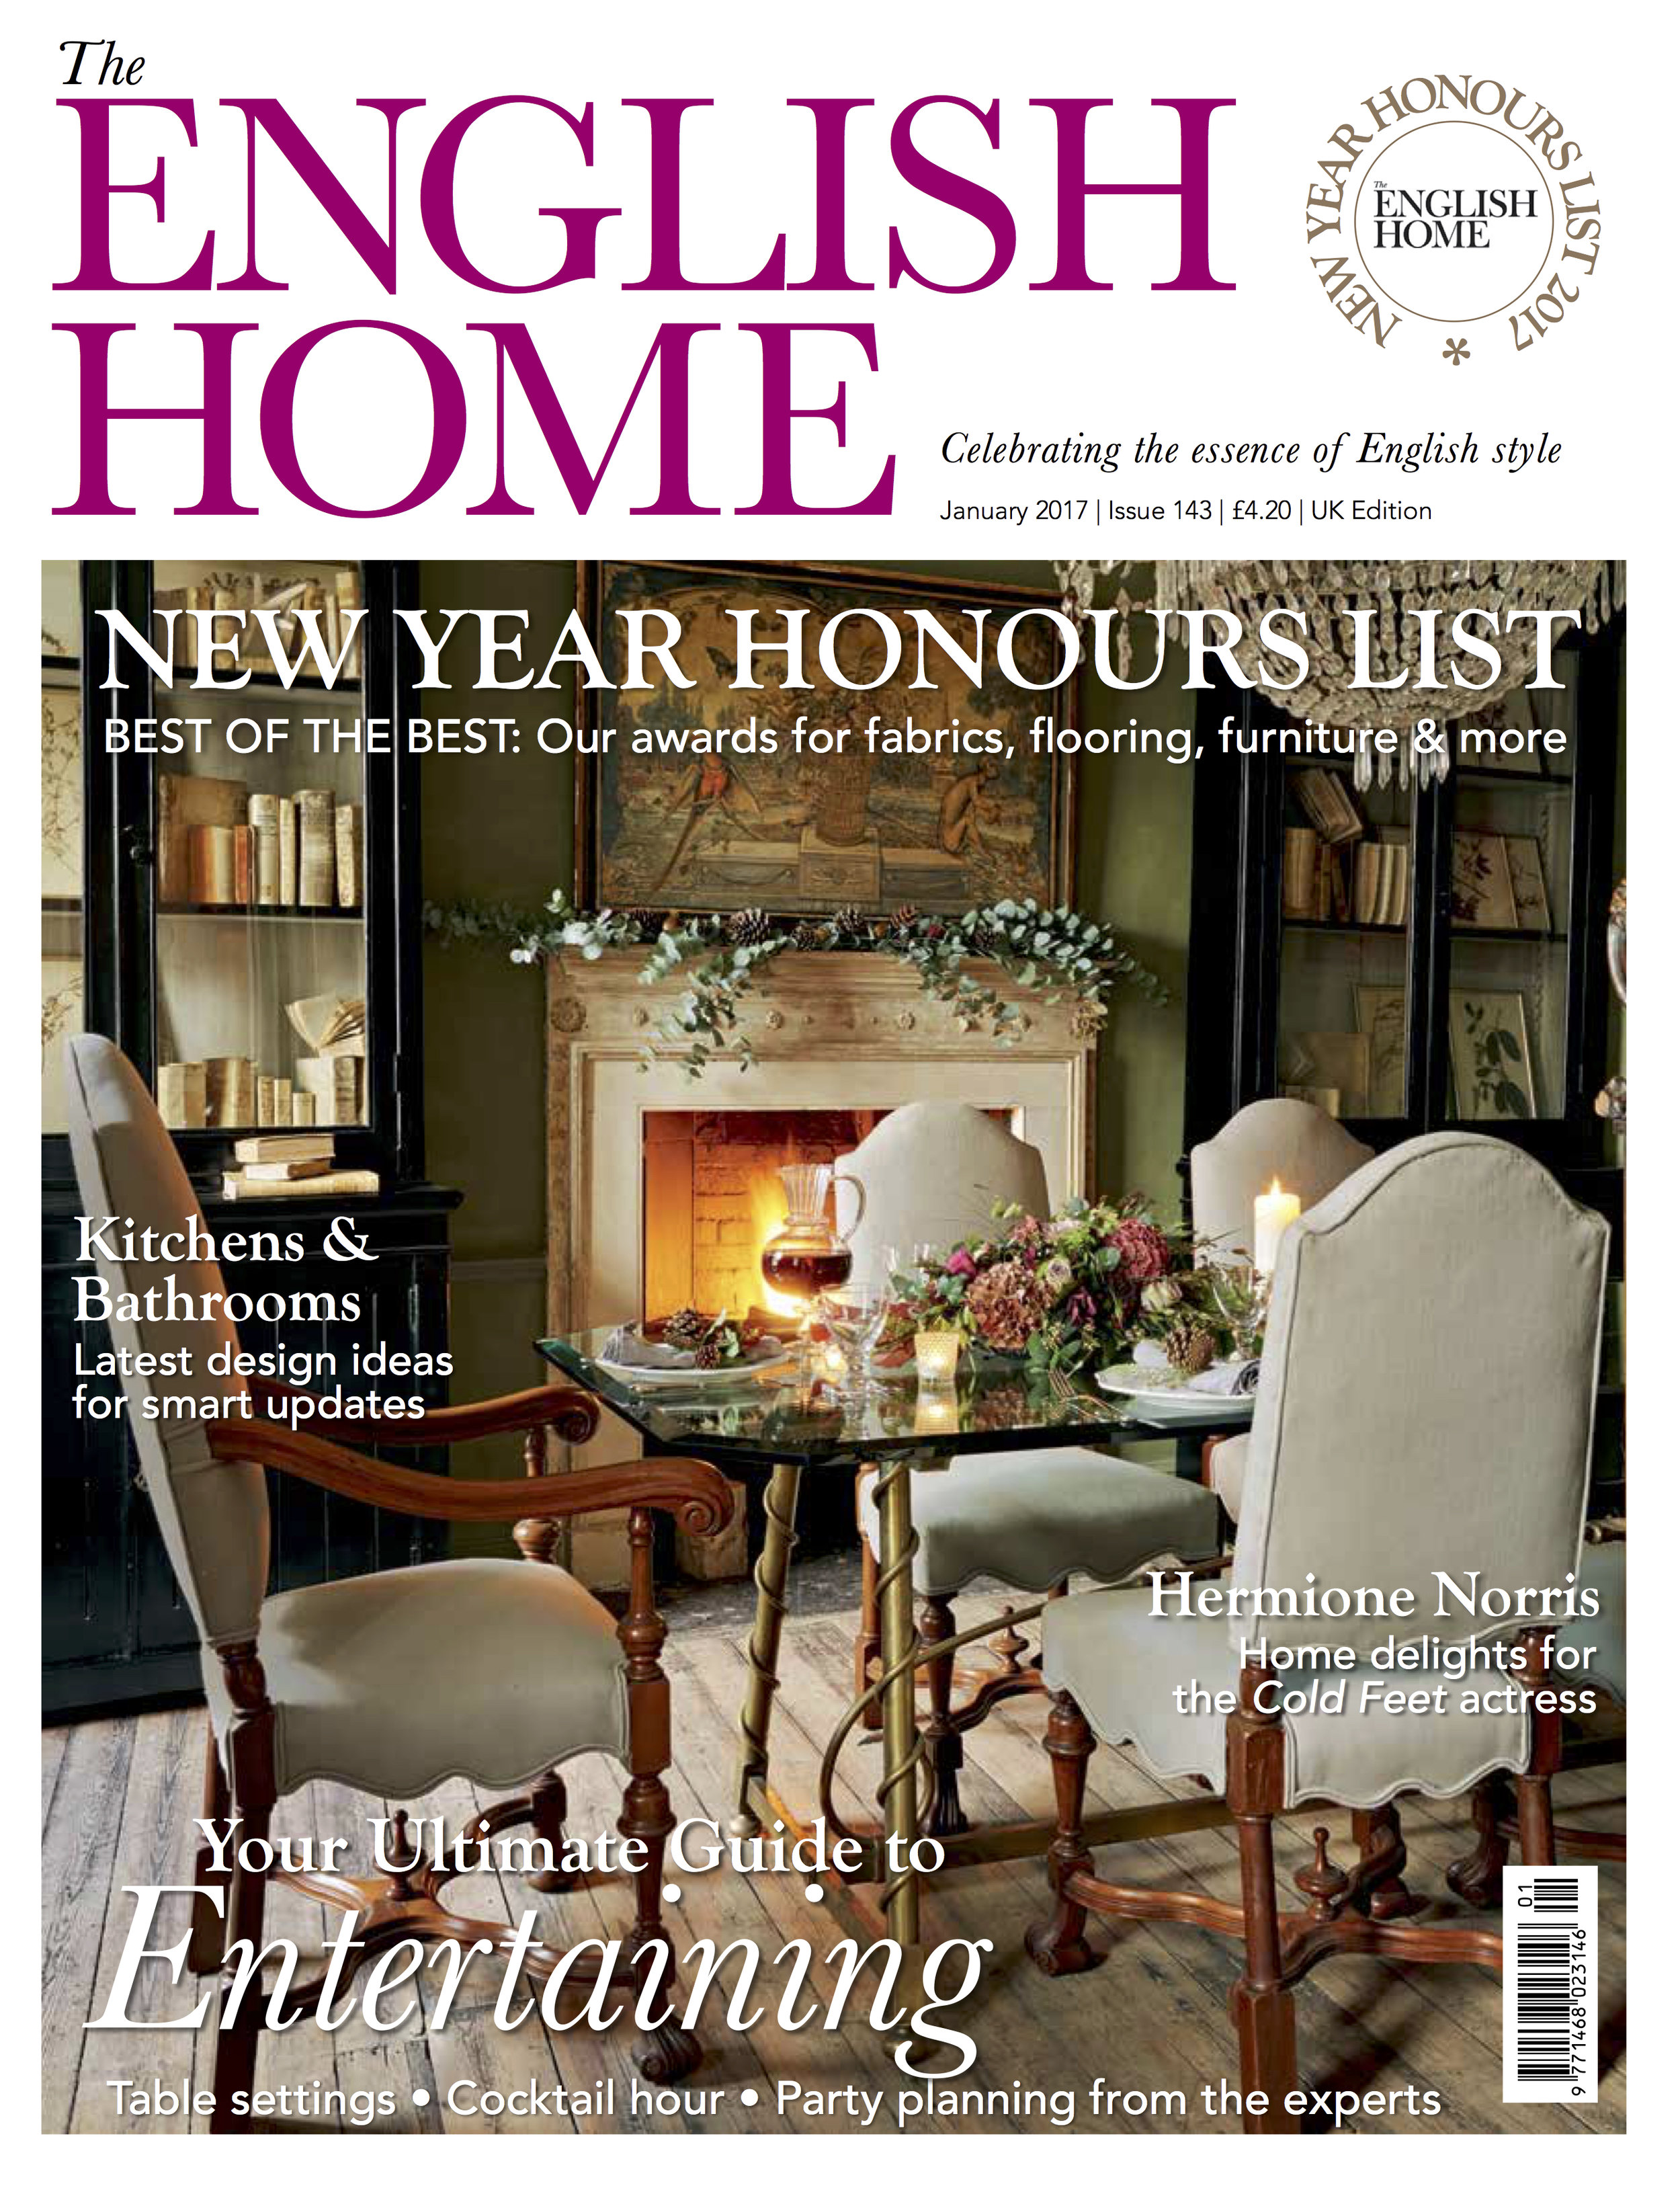 The English Home Jan cover.jpg